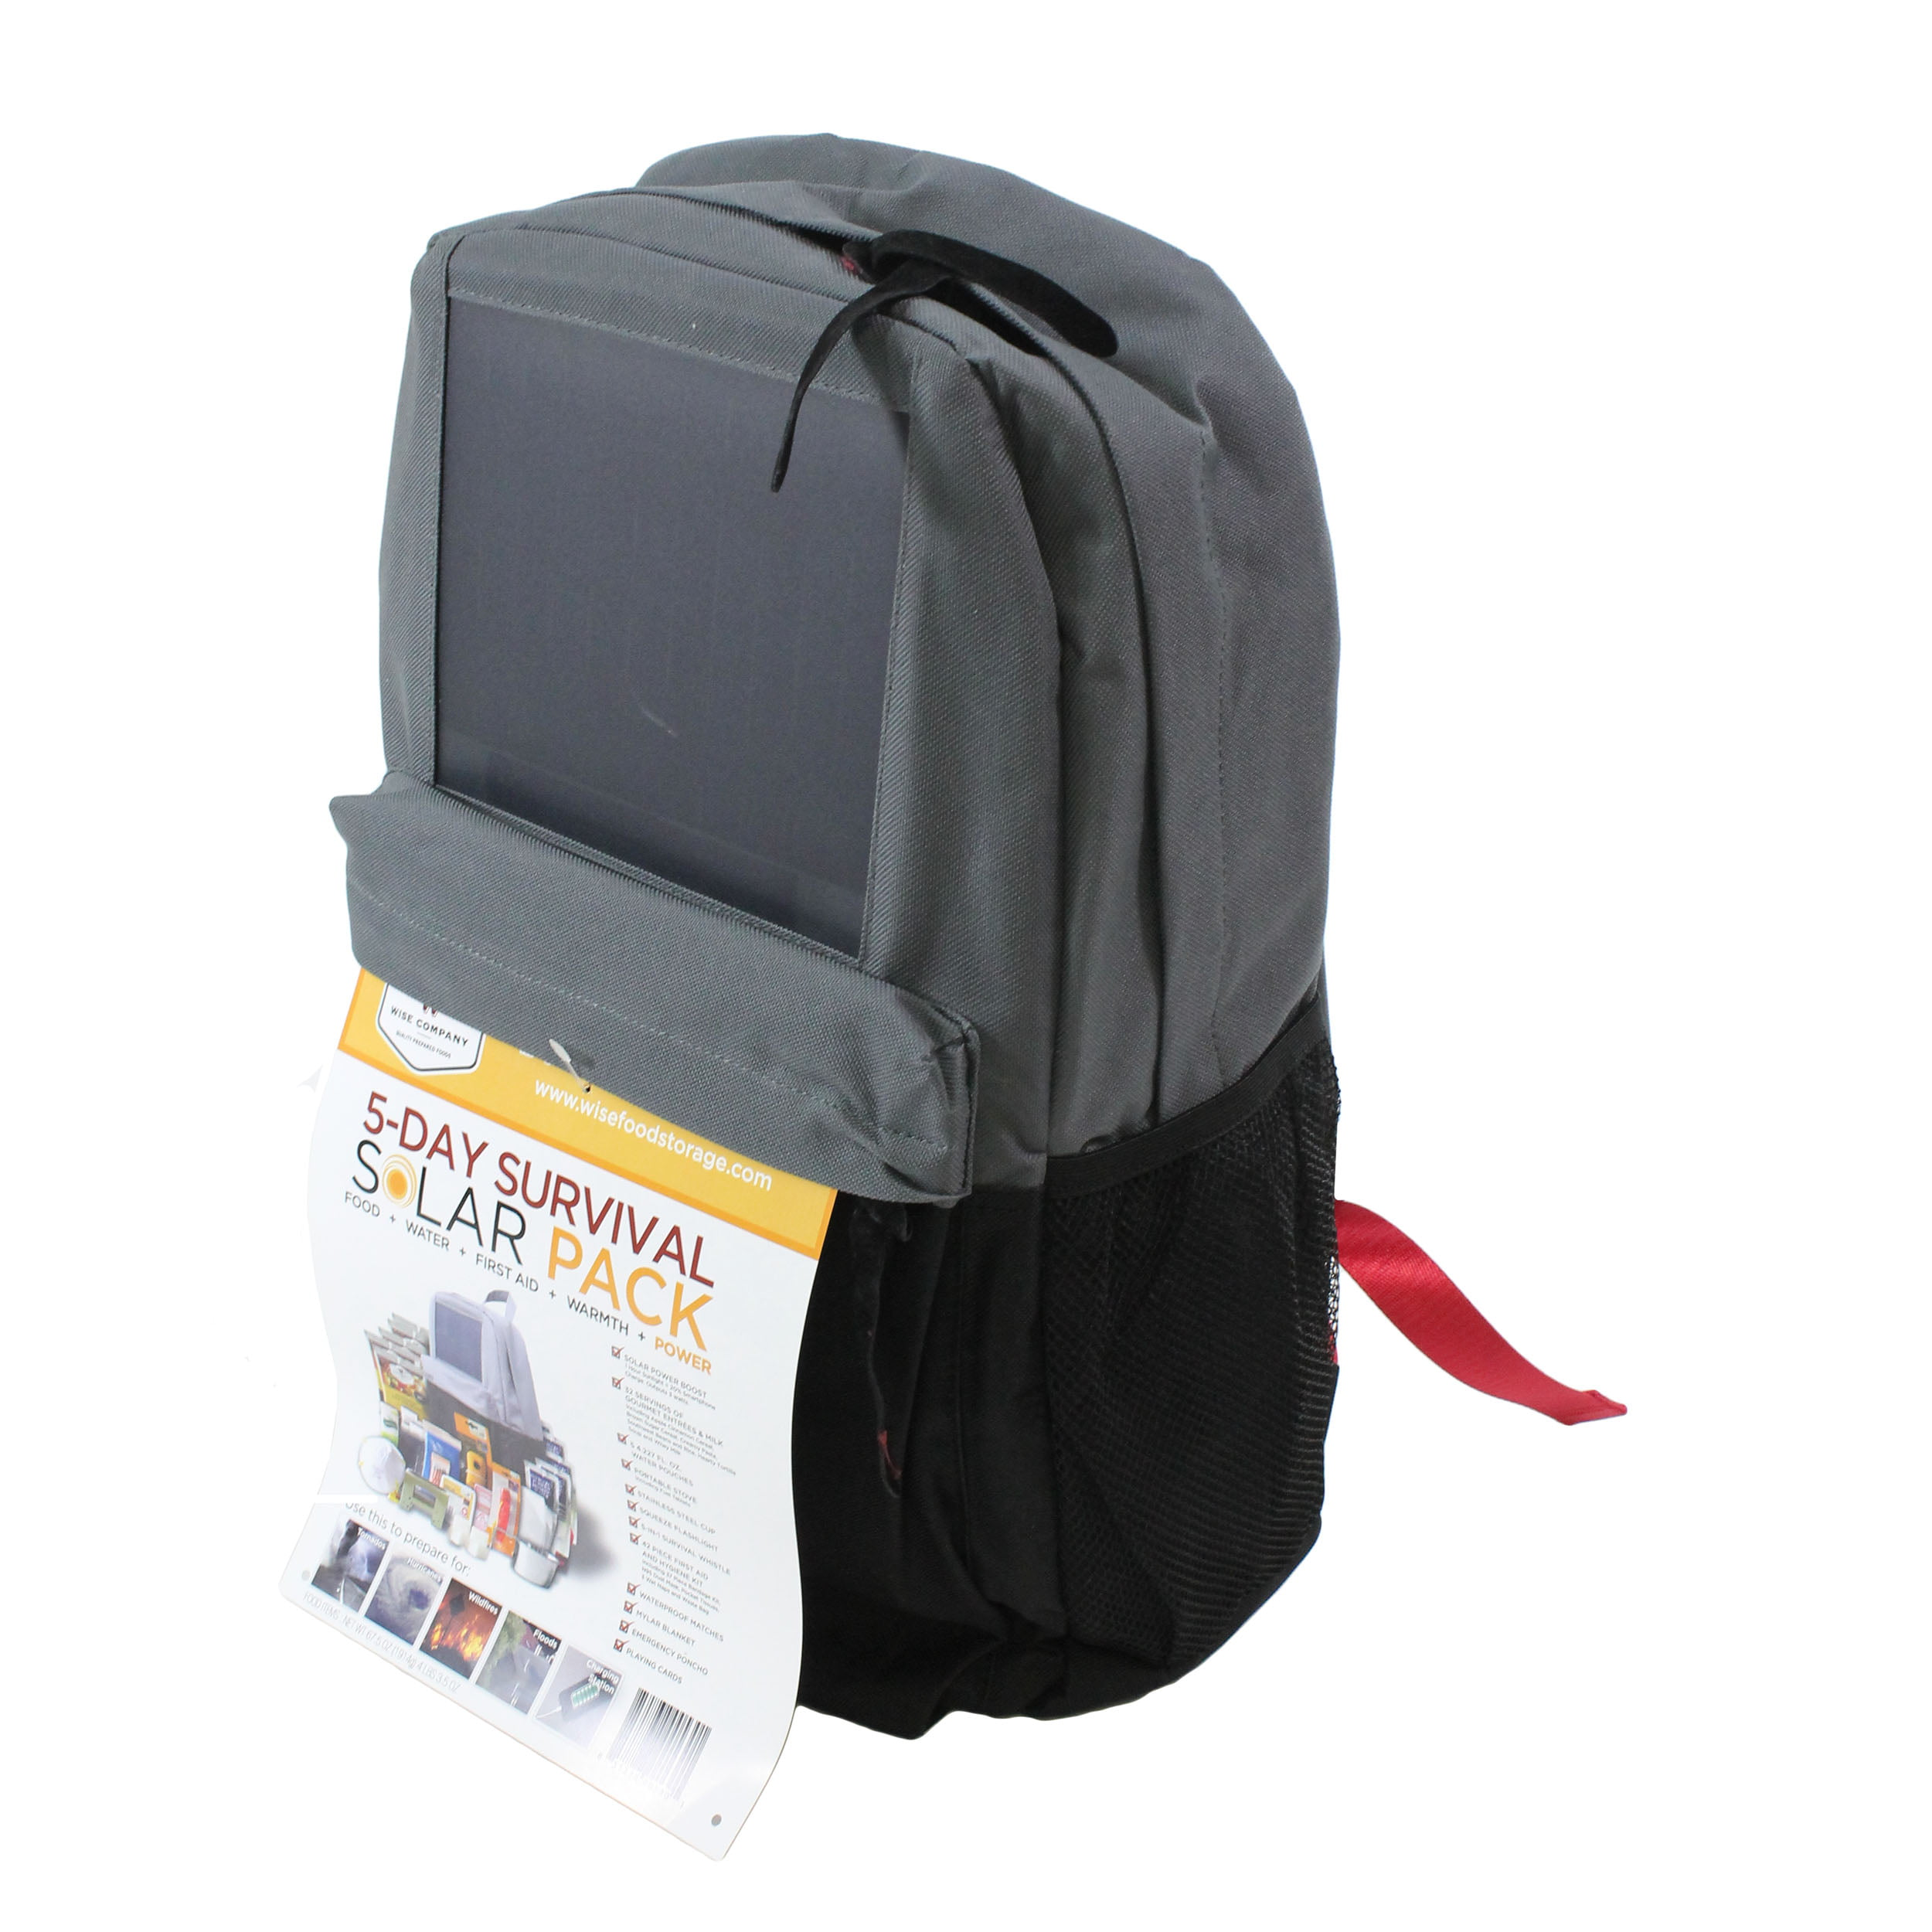 Wise Solar Backpack + 5 Day Survival Kit by Wise Company